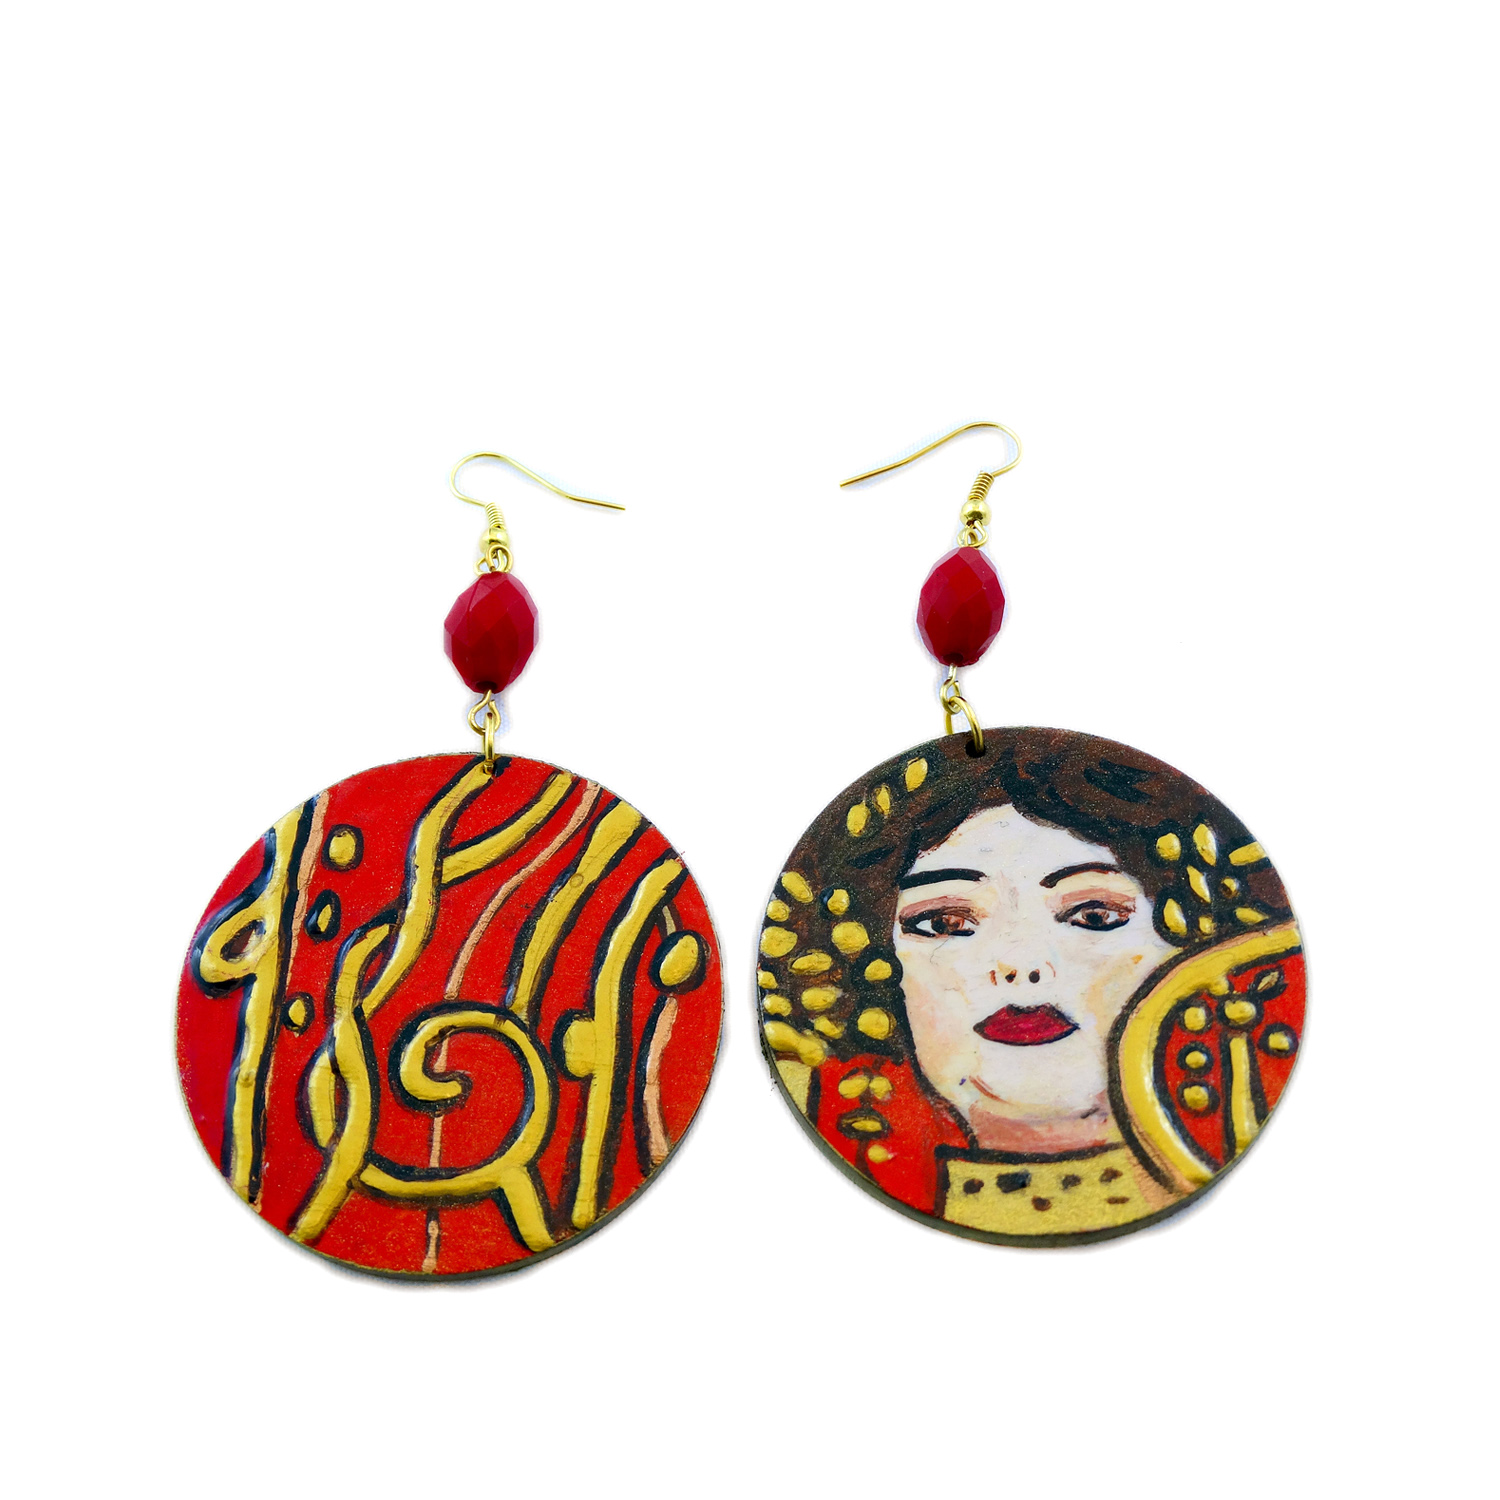 Hand-painted earrings - Igea (medicine) by Klimt